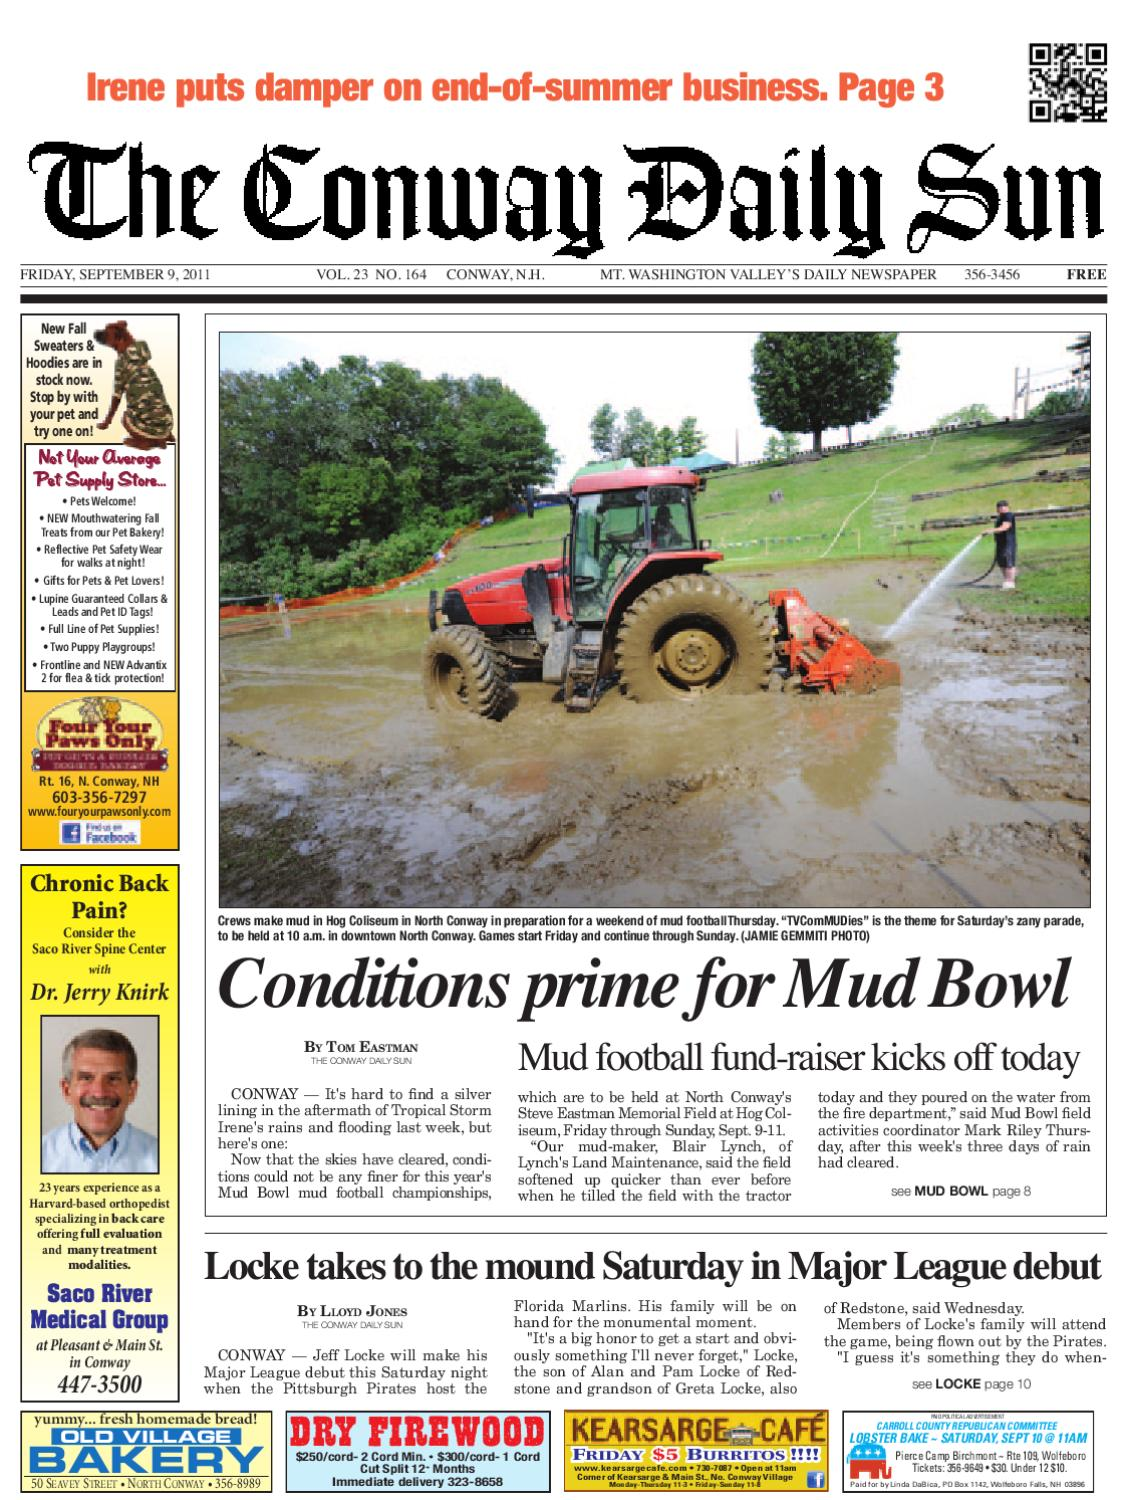 The Conway Daily Sun Friday September 16 2011 Issuu 5970405